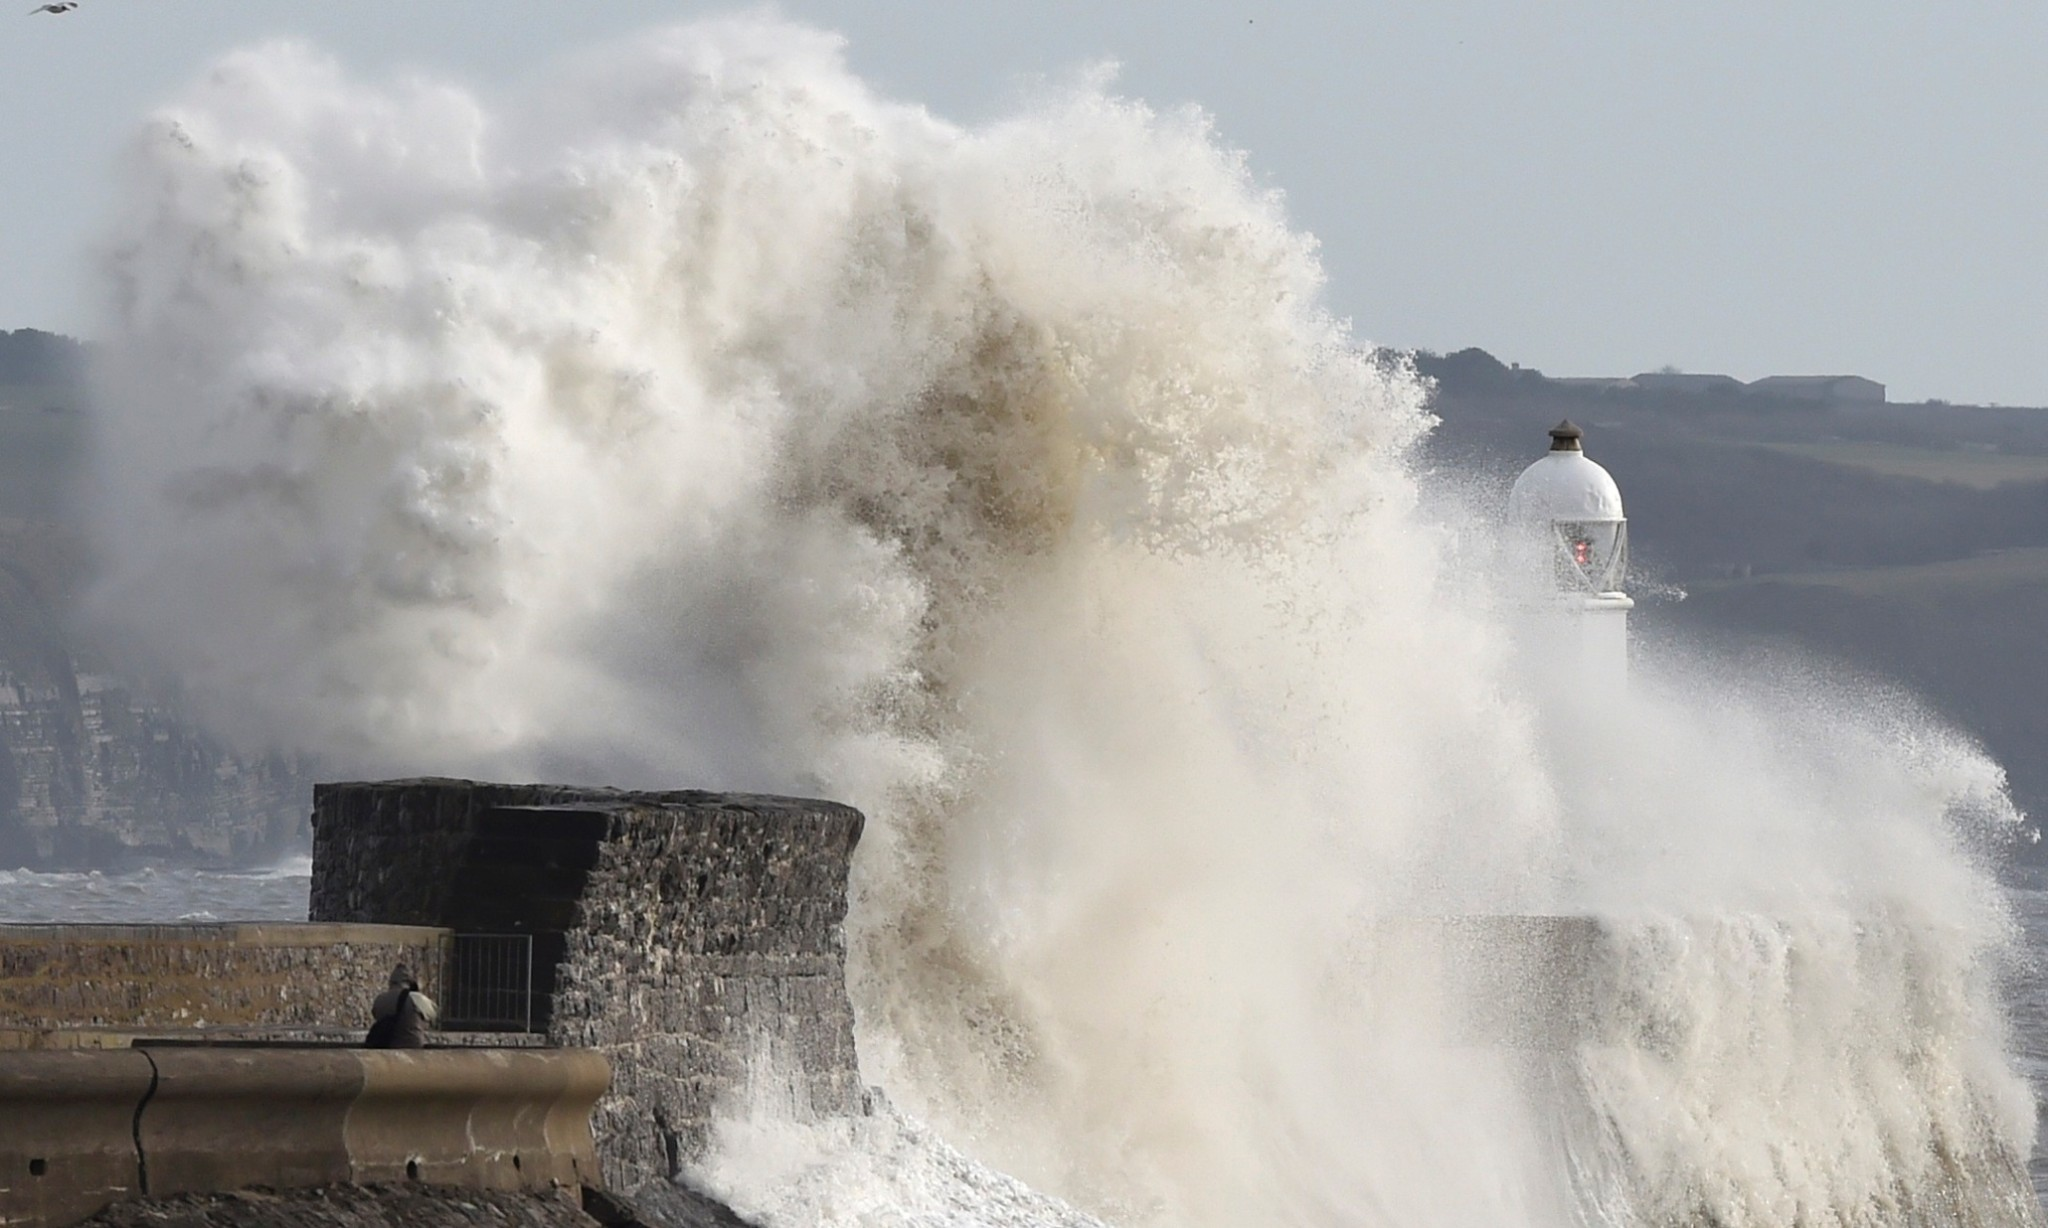 Gales and heavy rain cause floods and travel chaos across the UK